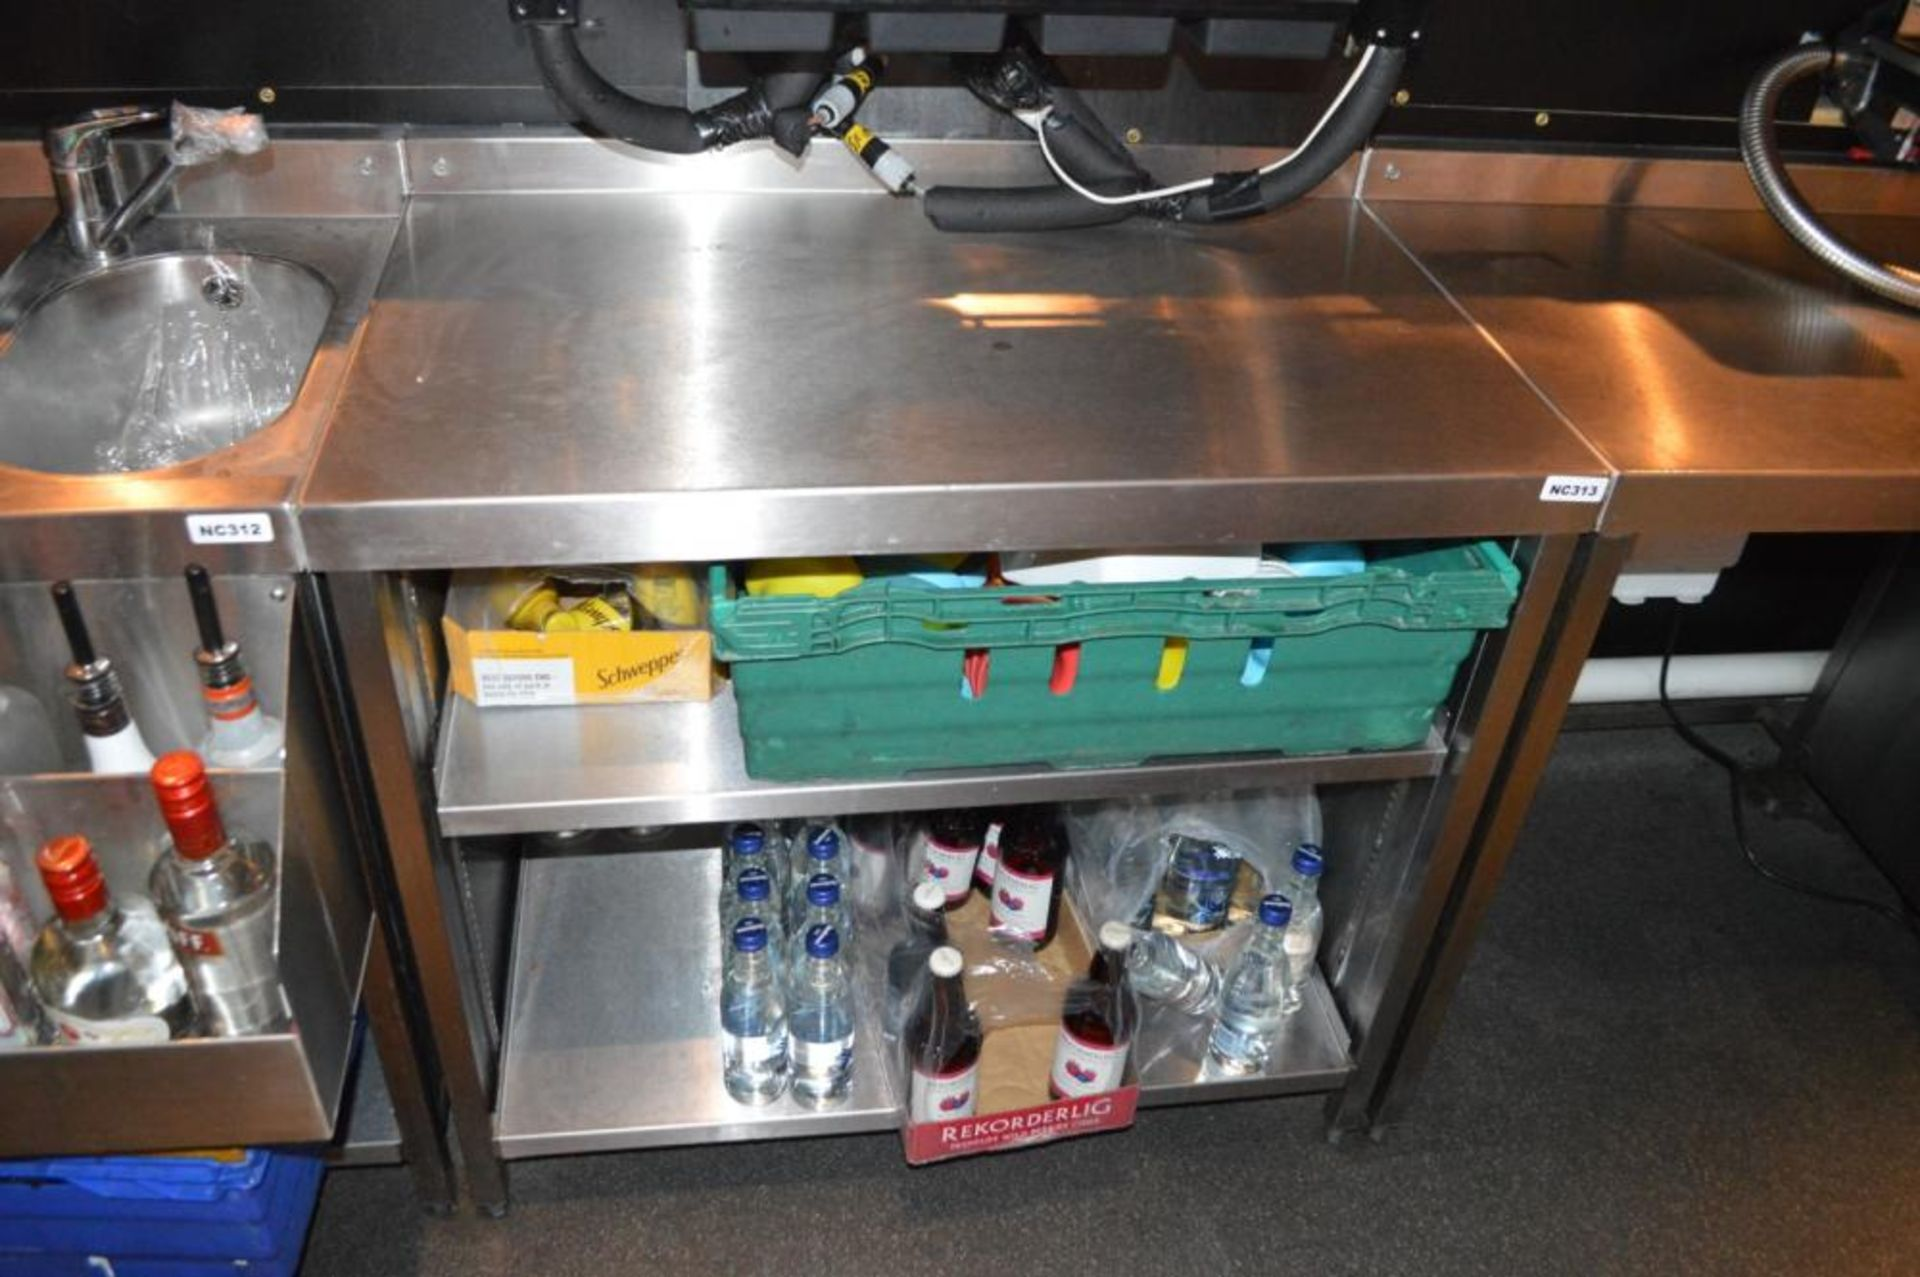 Lot 112 - 1 x Stainless Steel Back Bar Prep Table With Adjustable Shelves - H81 x W90 x D58 cms - Ref